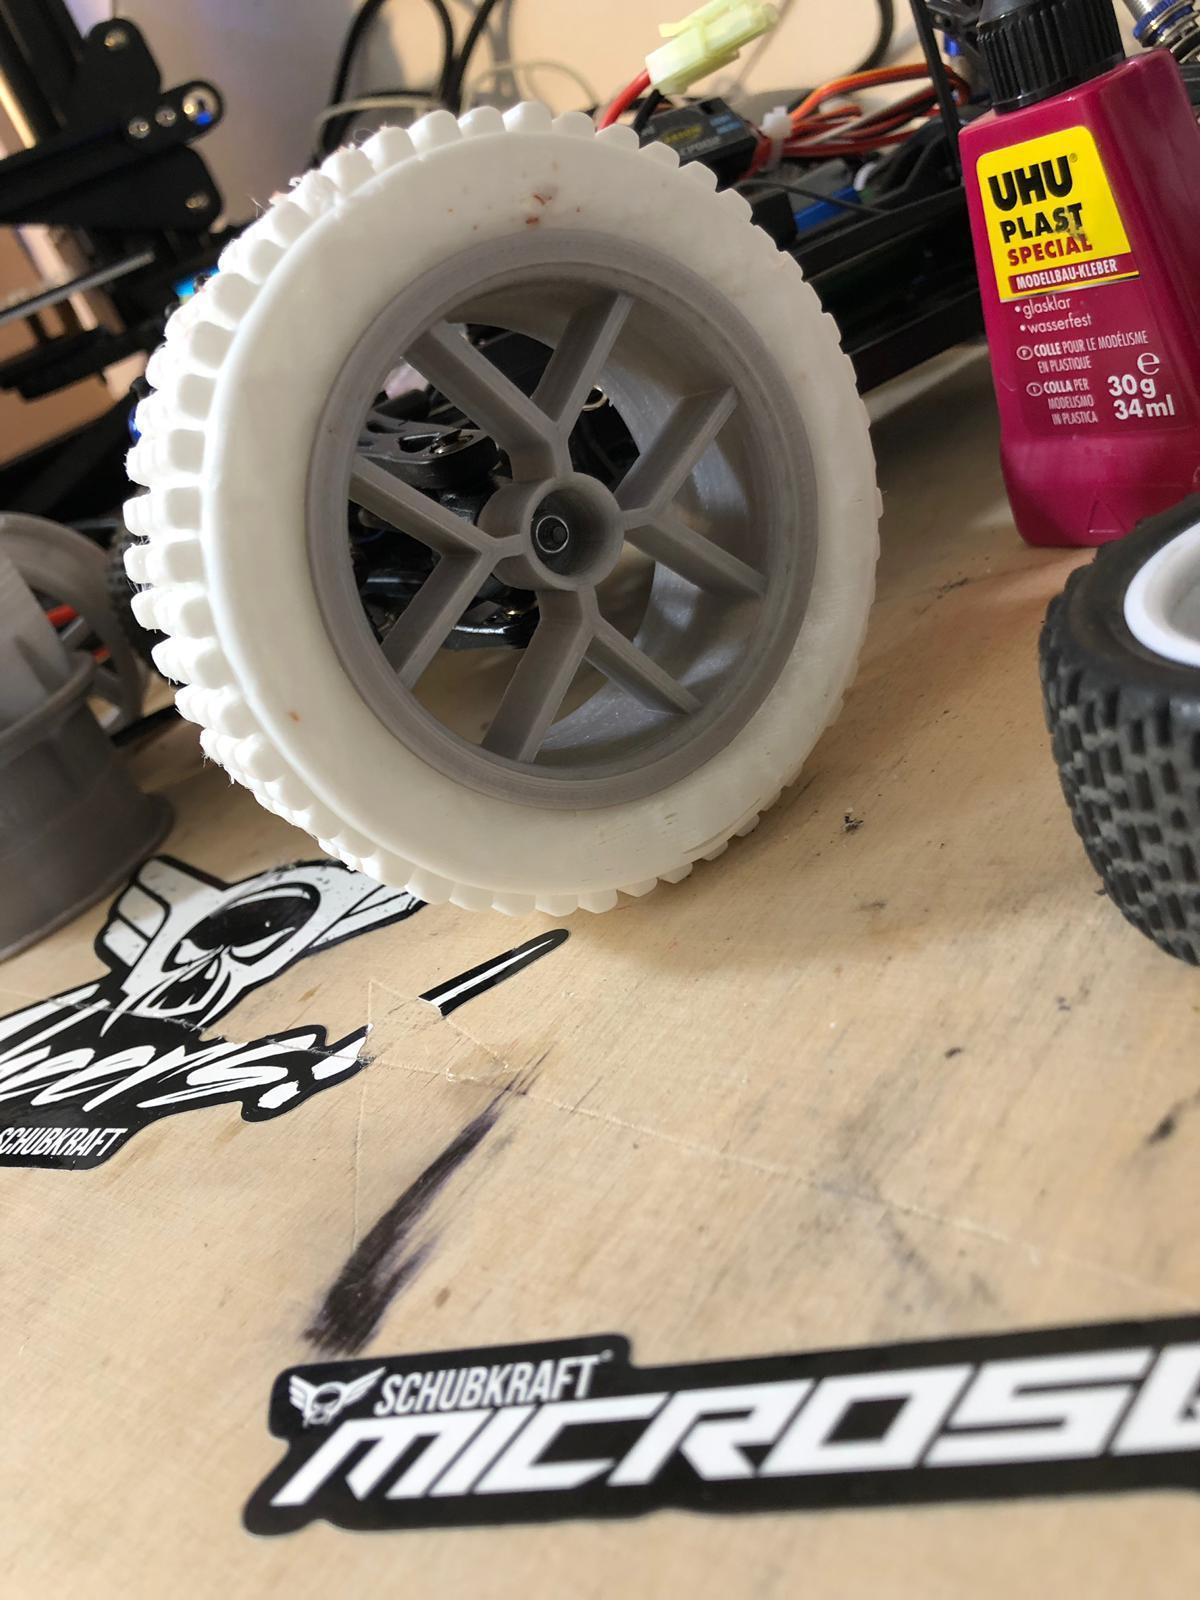 WhatsApp Image 2019-05-04 at 12.00.30.jpeg Download free STL file RC Car wheel with Tire for 1:16 and 1:18 Models • Model to 3D print, Celil27